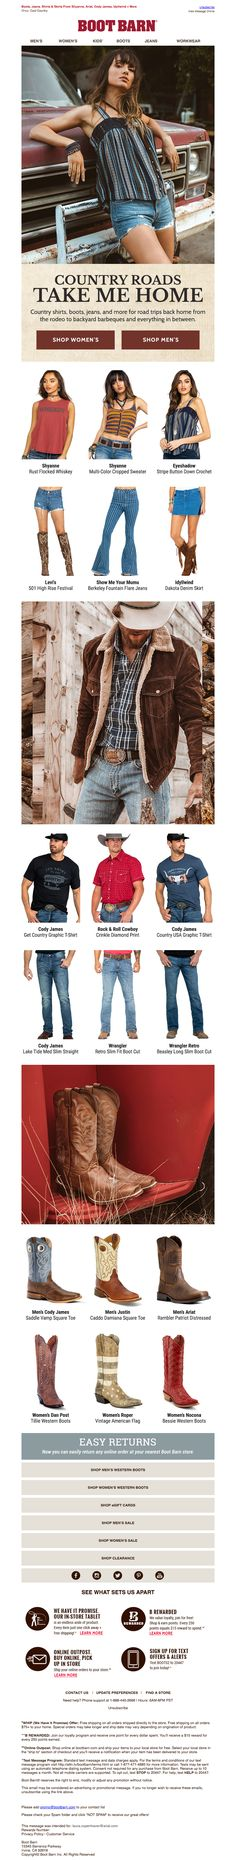 bootbarn2 Email Design Inspiration, Email Newsletters, Take Me Home, Collection, Shopping